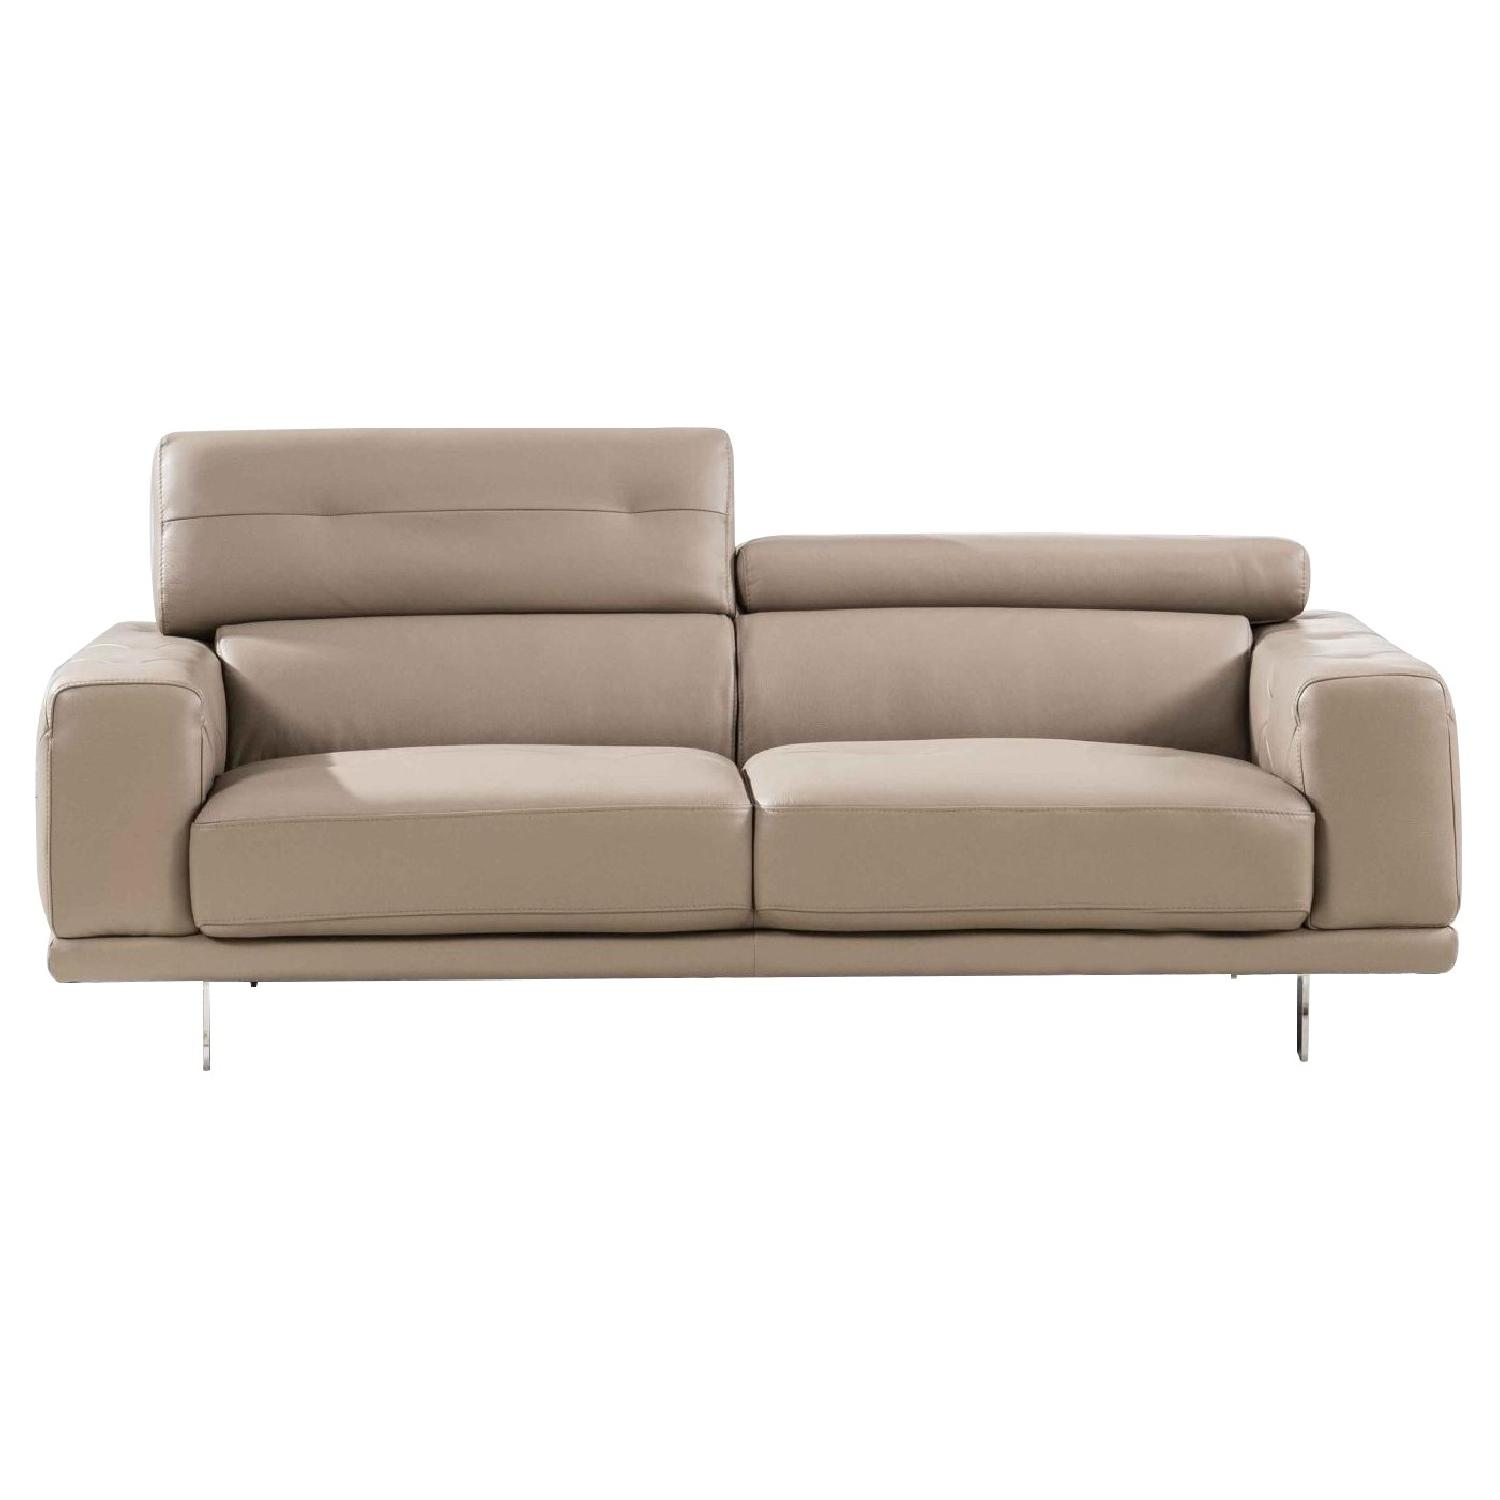 Modern Style Loveseat W/ Adjustable Headrests U0026 Tufted Sides In Taupe Color  Top Grain Leather